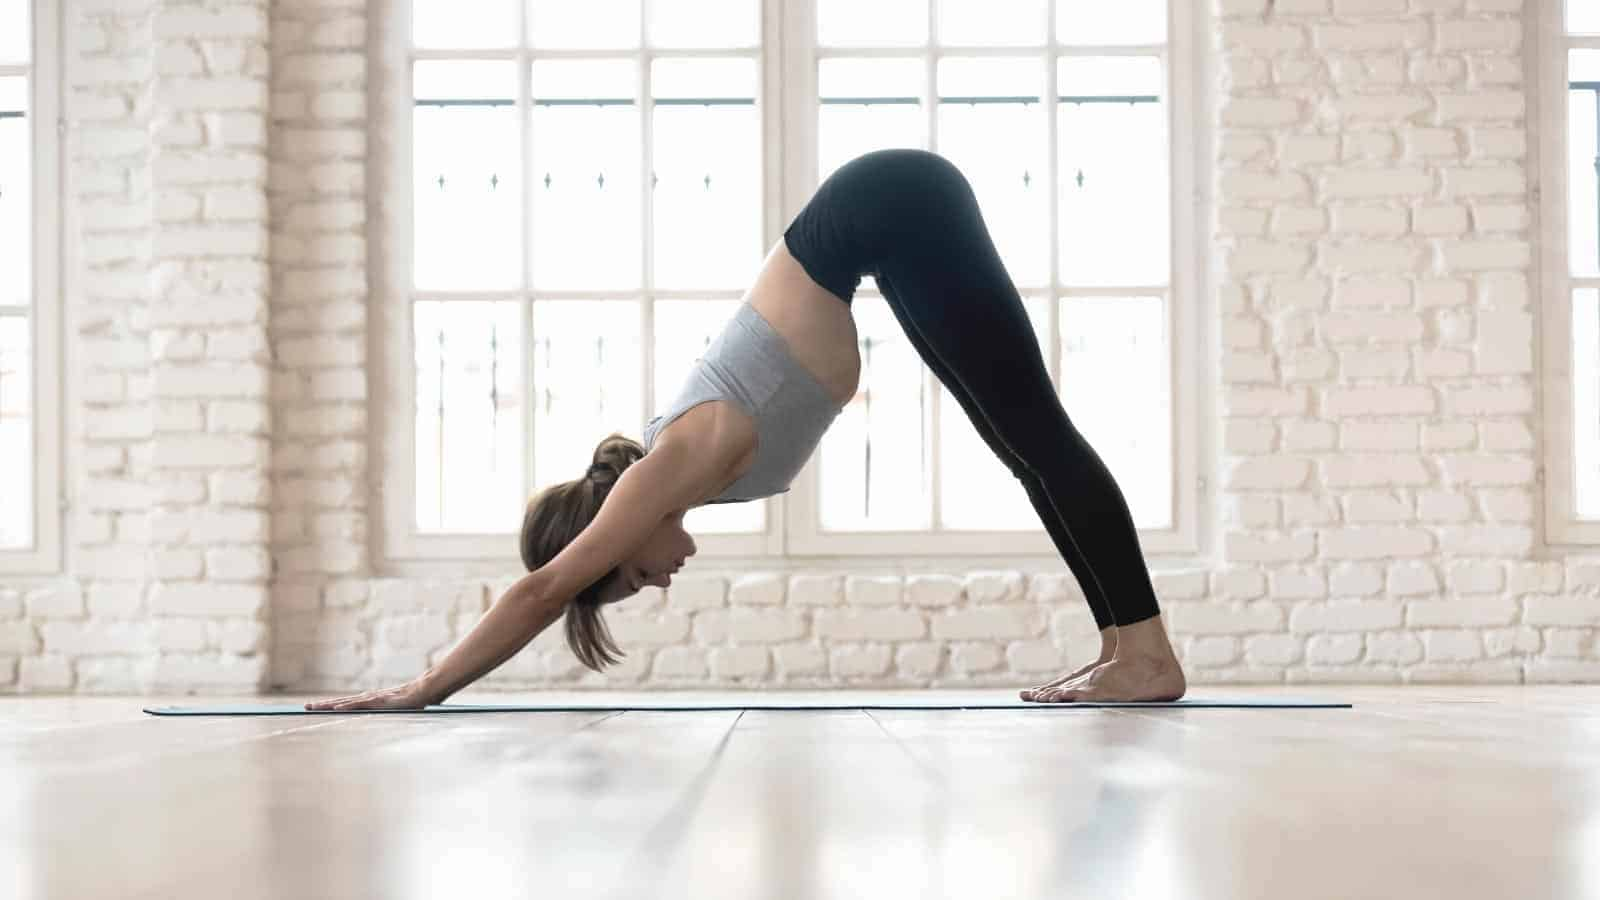 Difference between mountain pose and downward dog